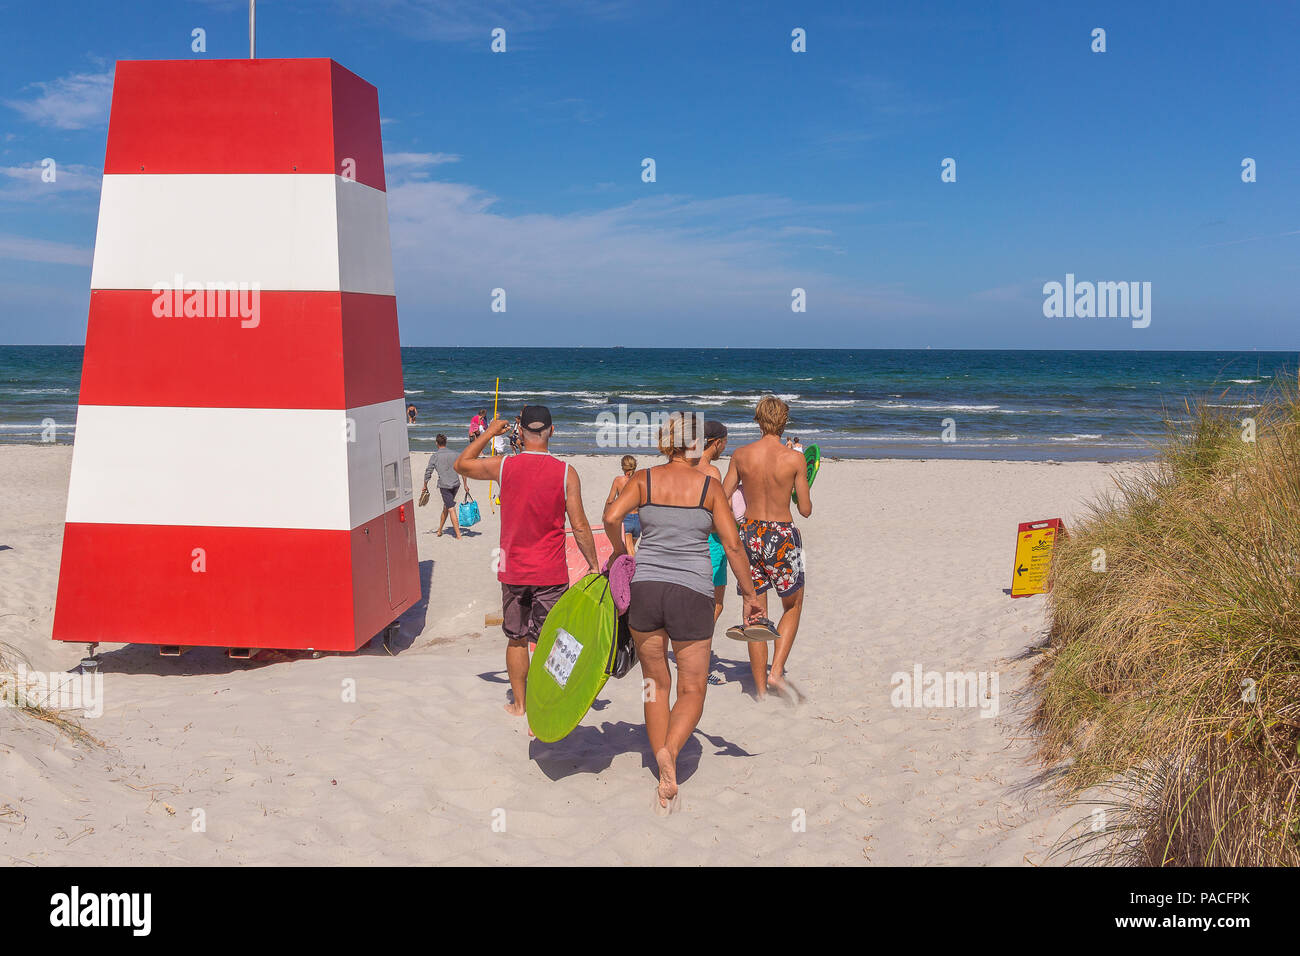 People walking in the sand towards the sea and a red an white rescue tower, Rorvig, Denmark, July 20, 2018 - Stock Image